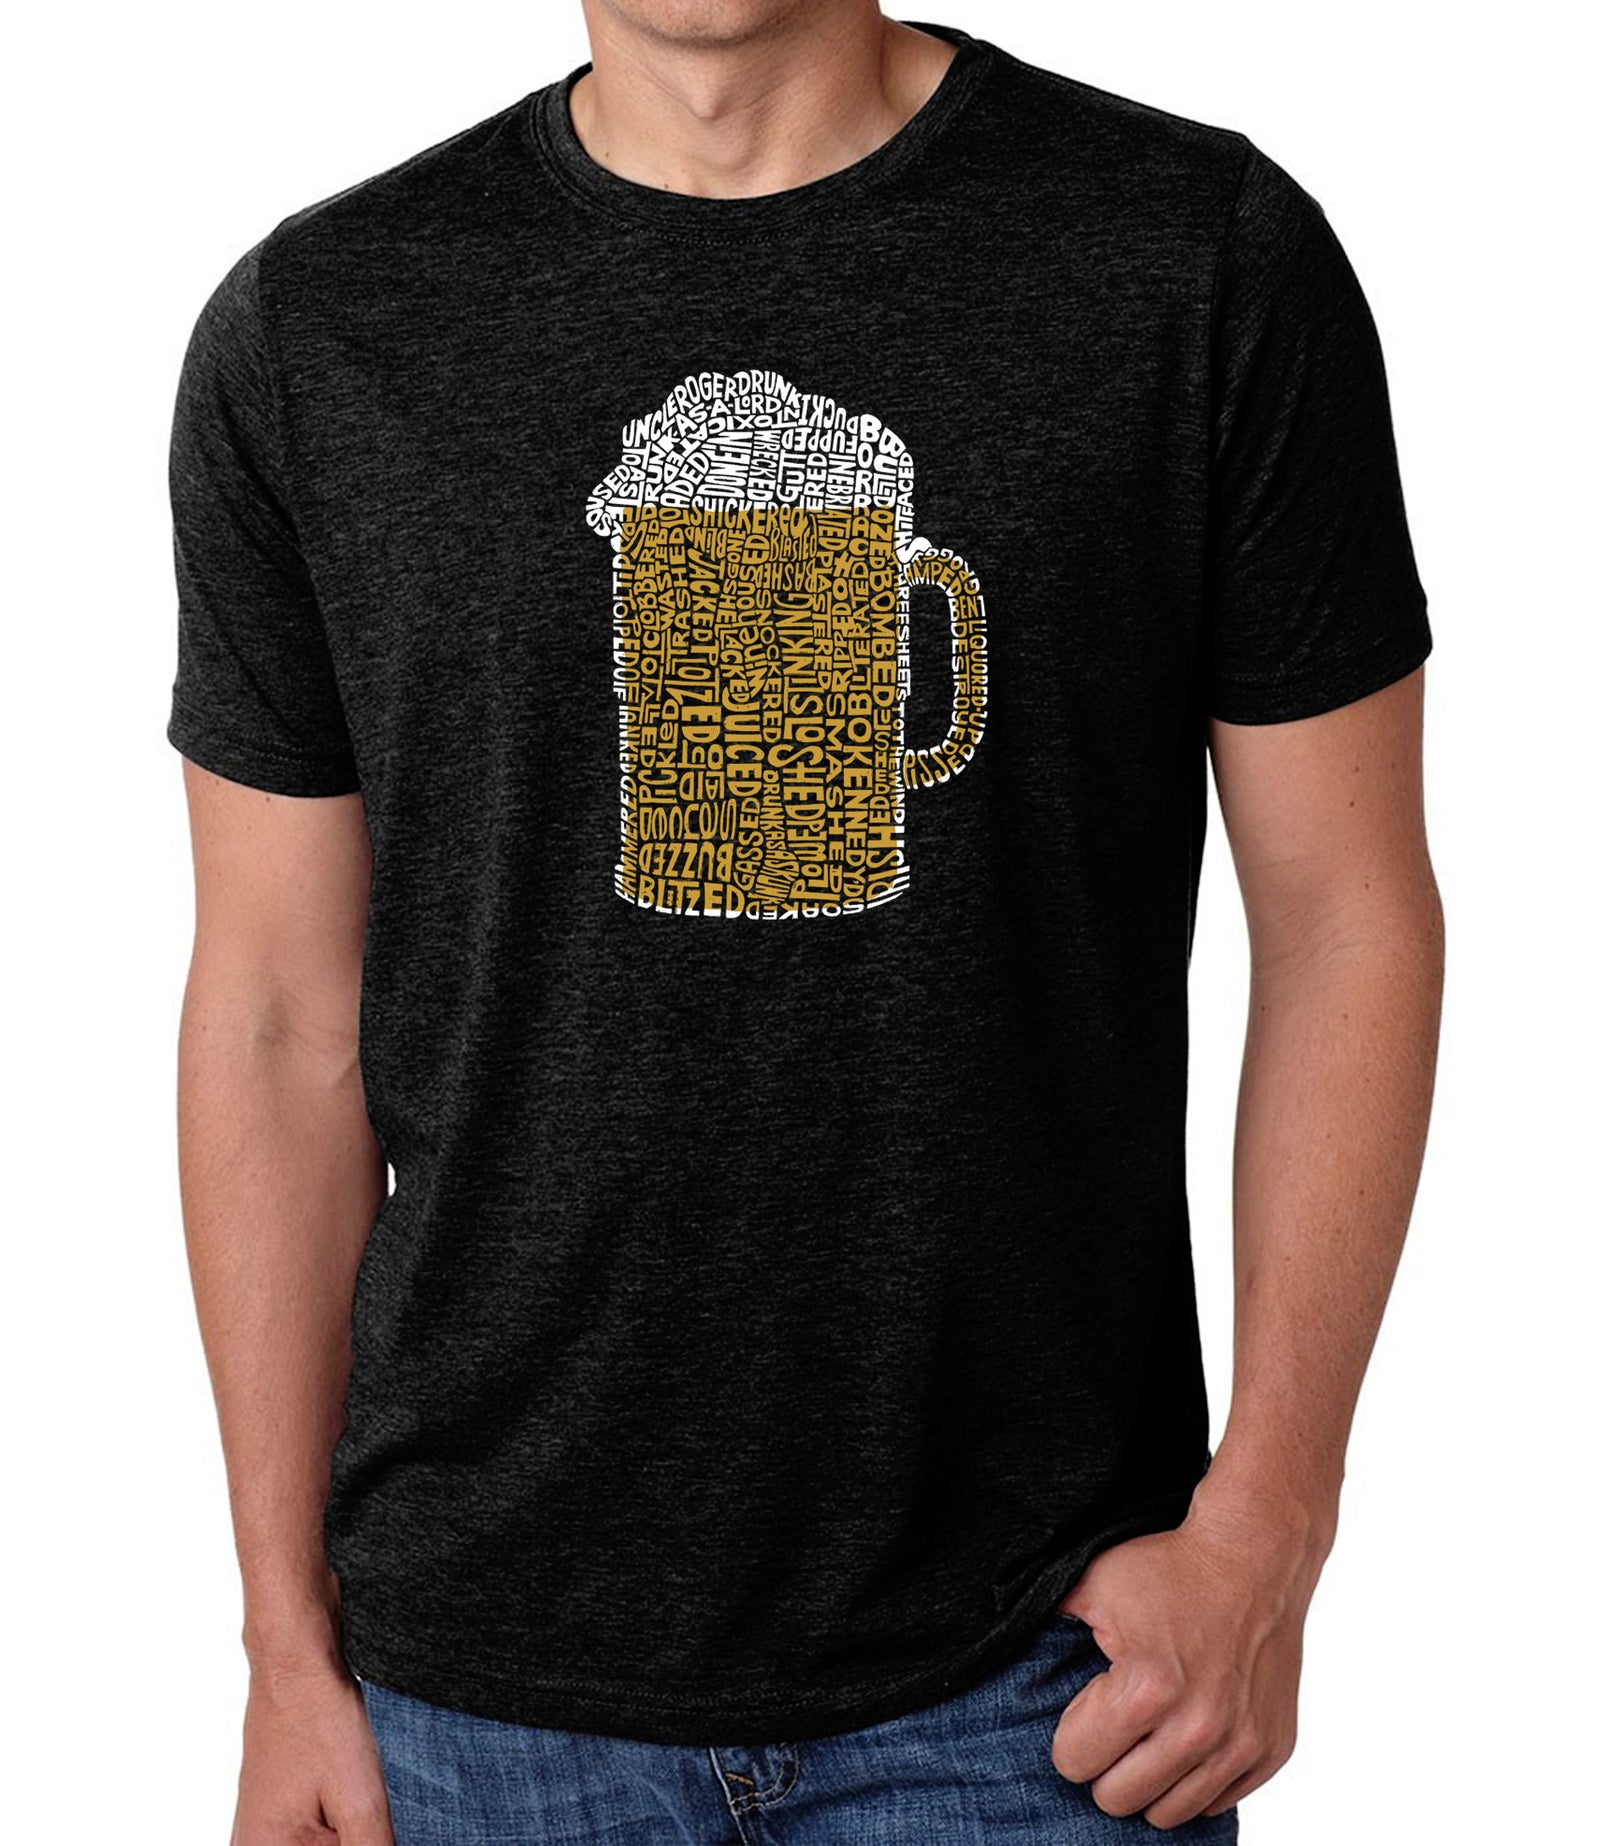 Men's Premium Blend Word Art T-shirt - Slang Terms for Being Wasted